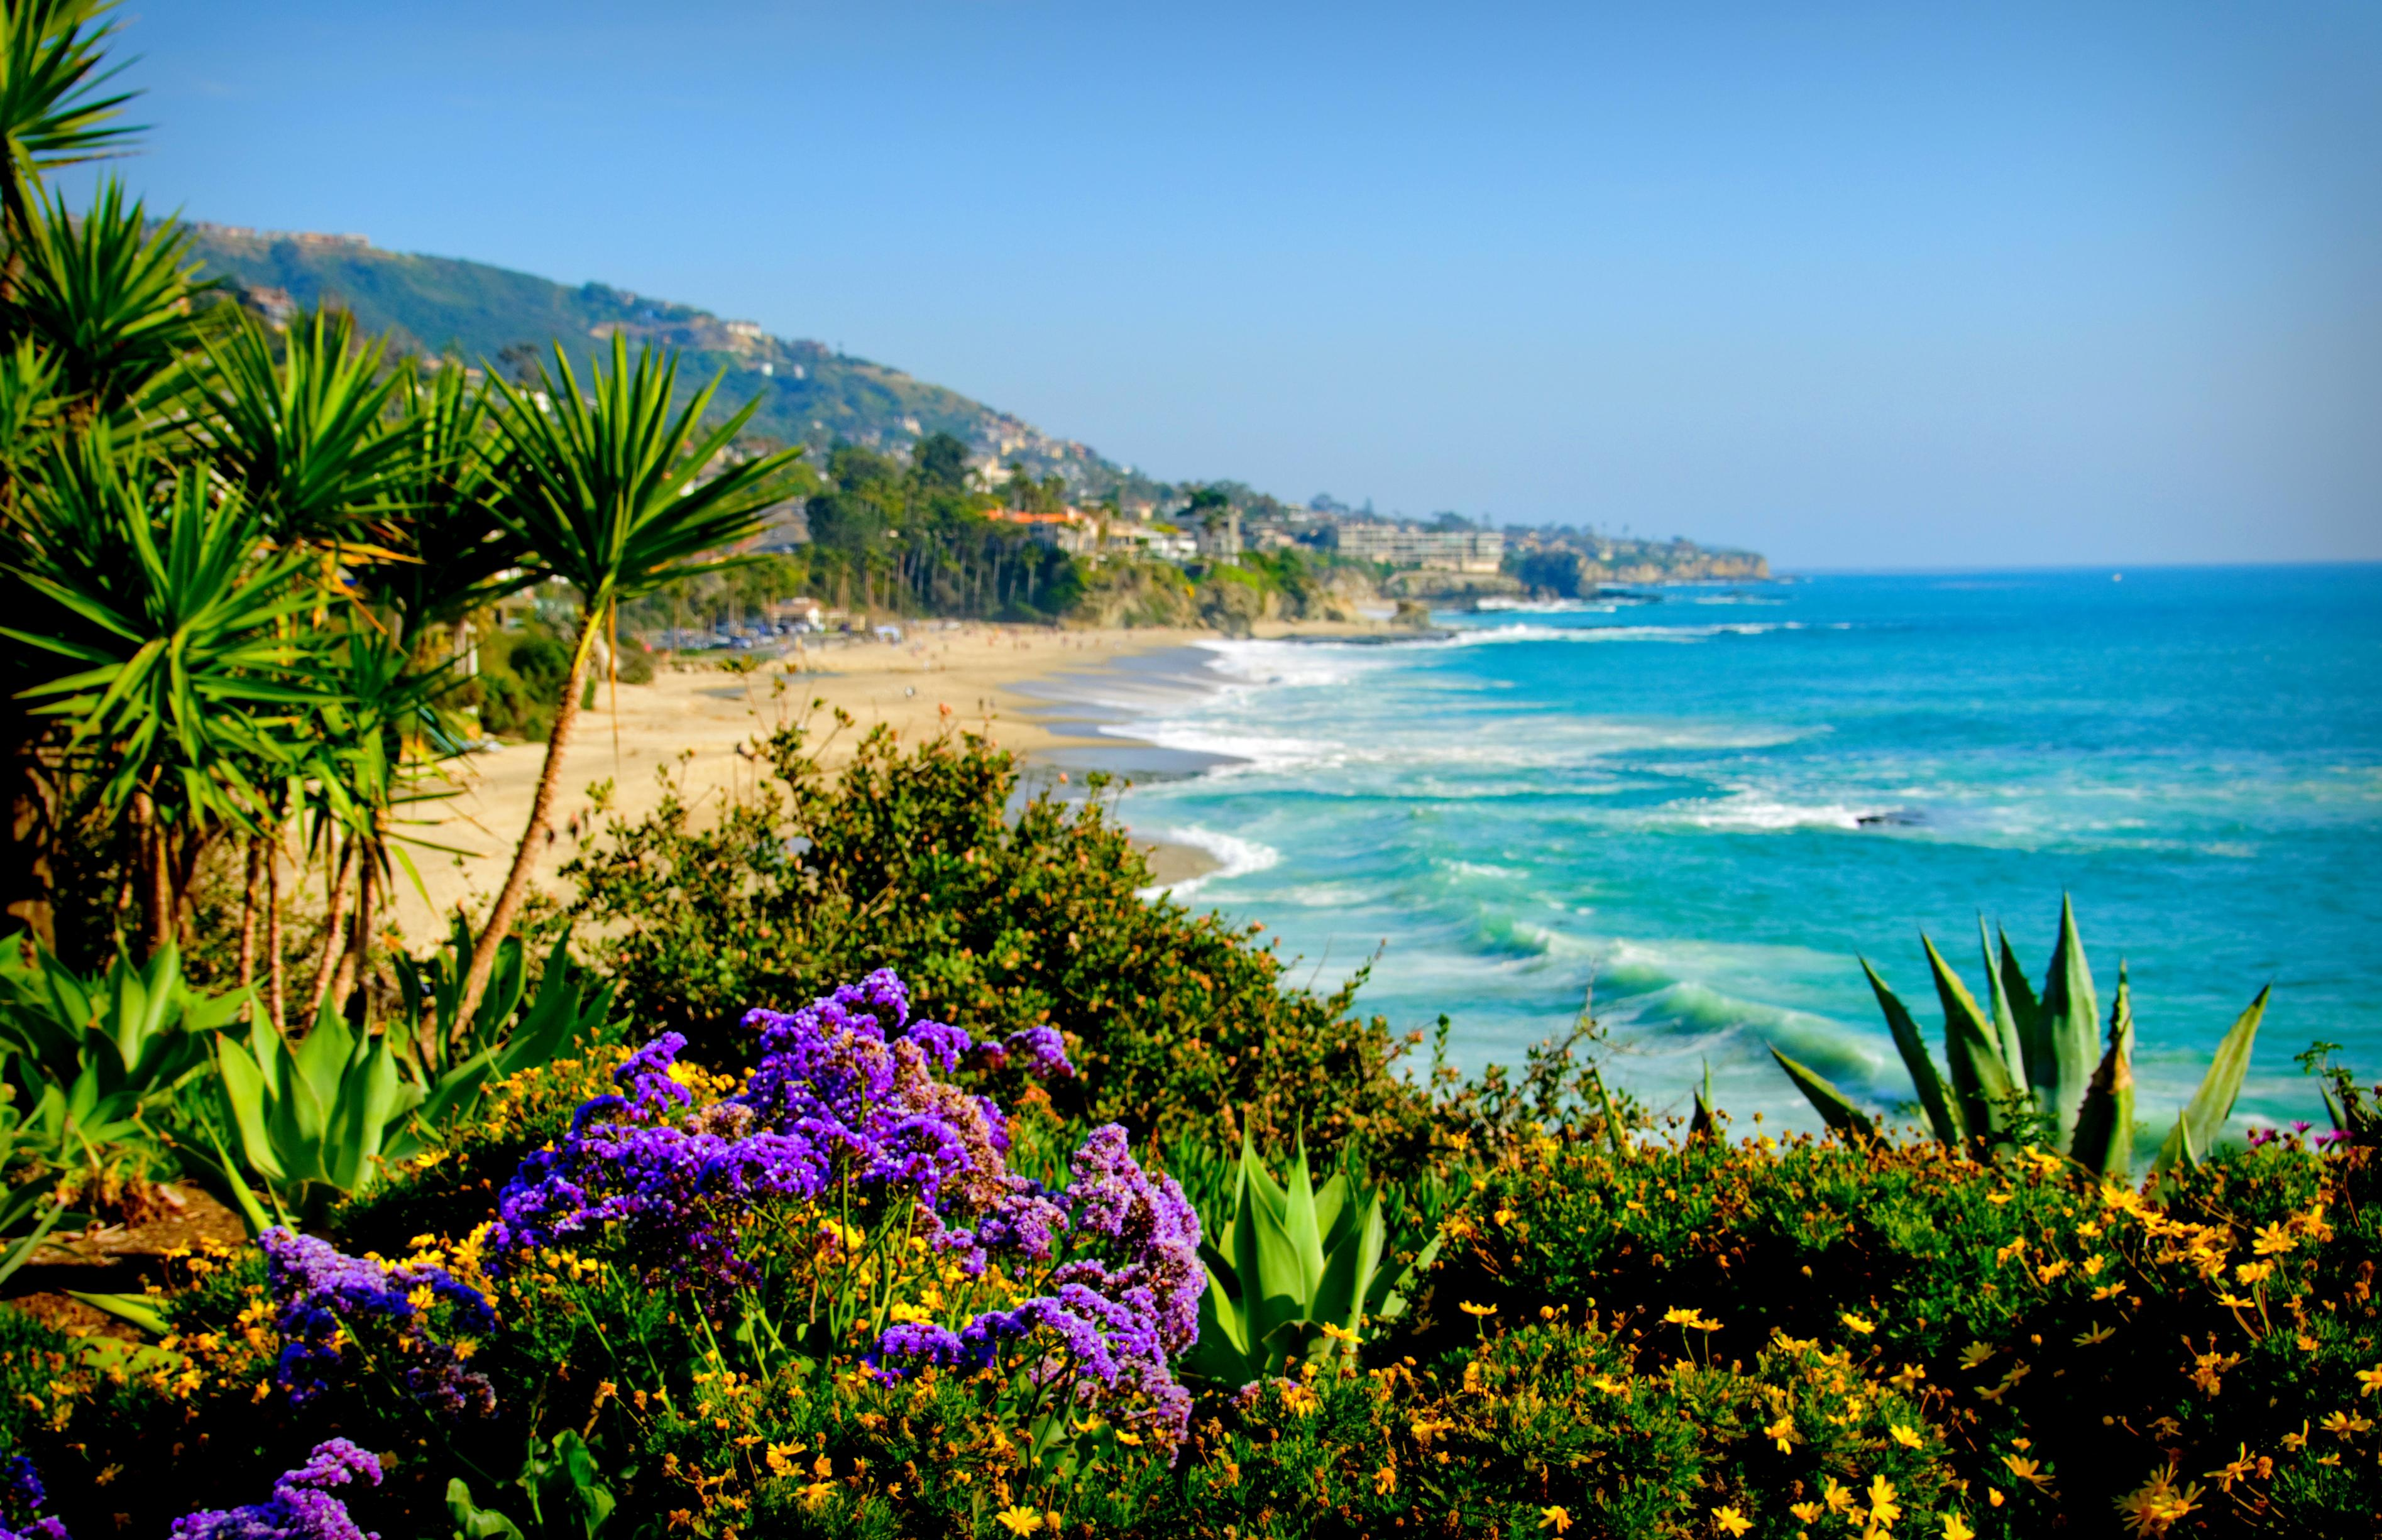 beach california   143380   High Quality and Resolution Wallpapers 3790x2451